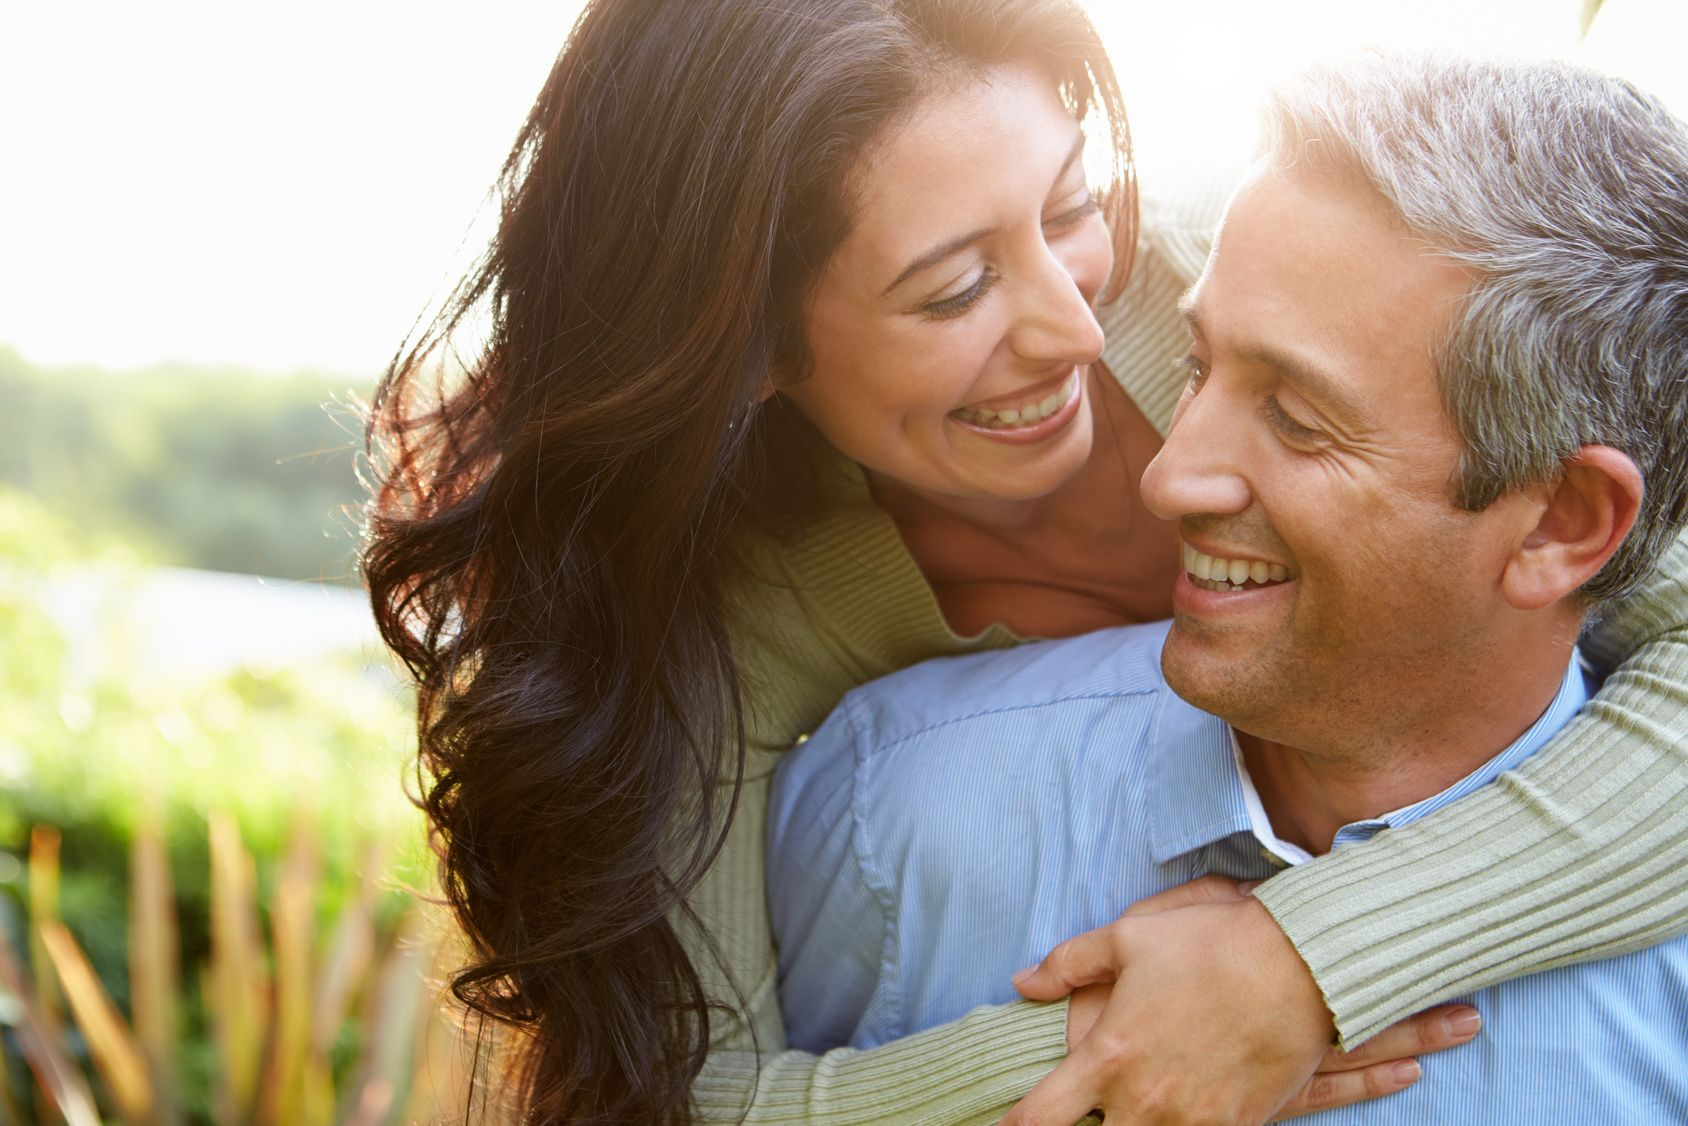 phrase and Free american dating website think, that you commit